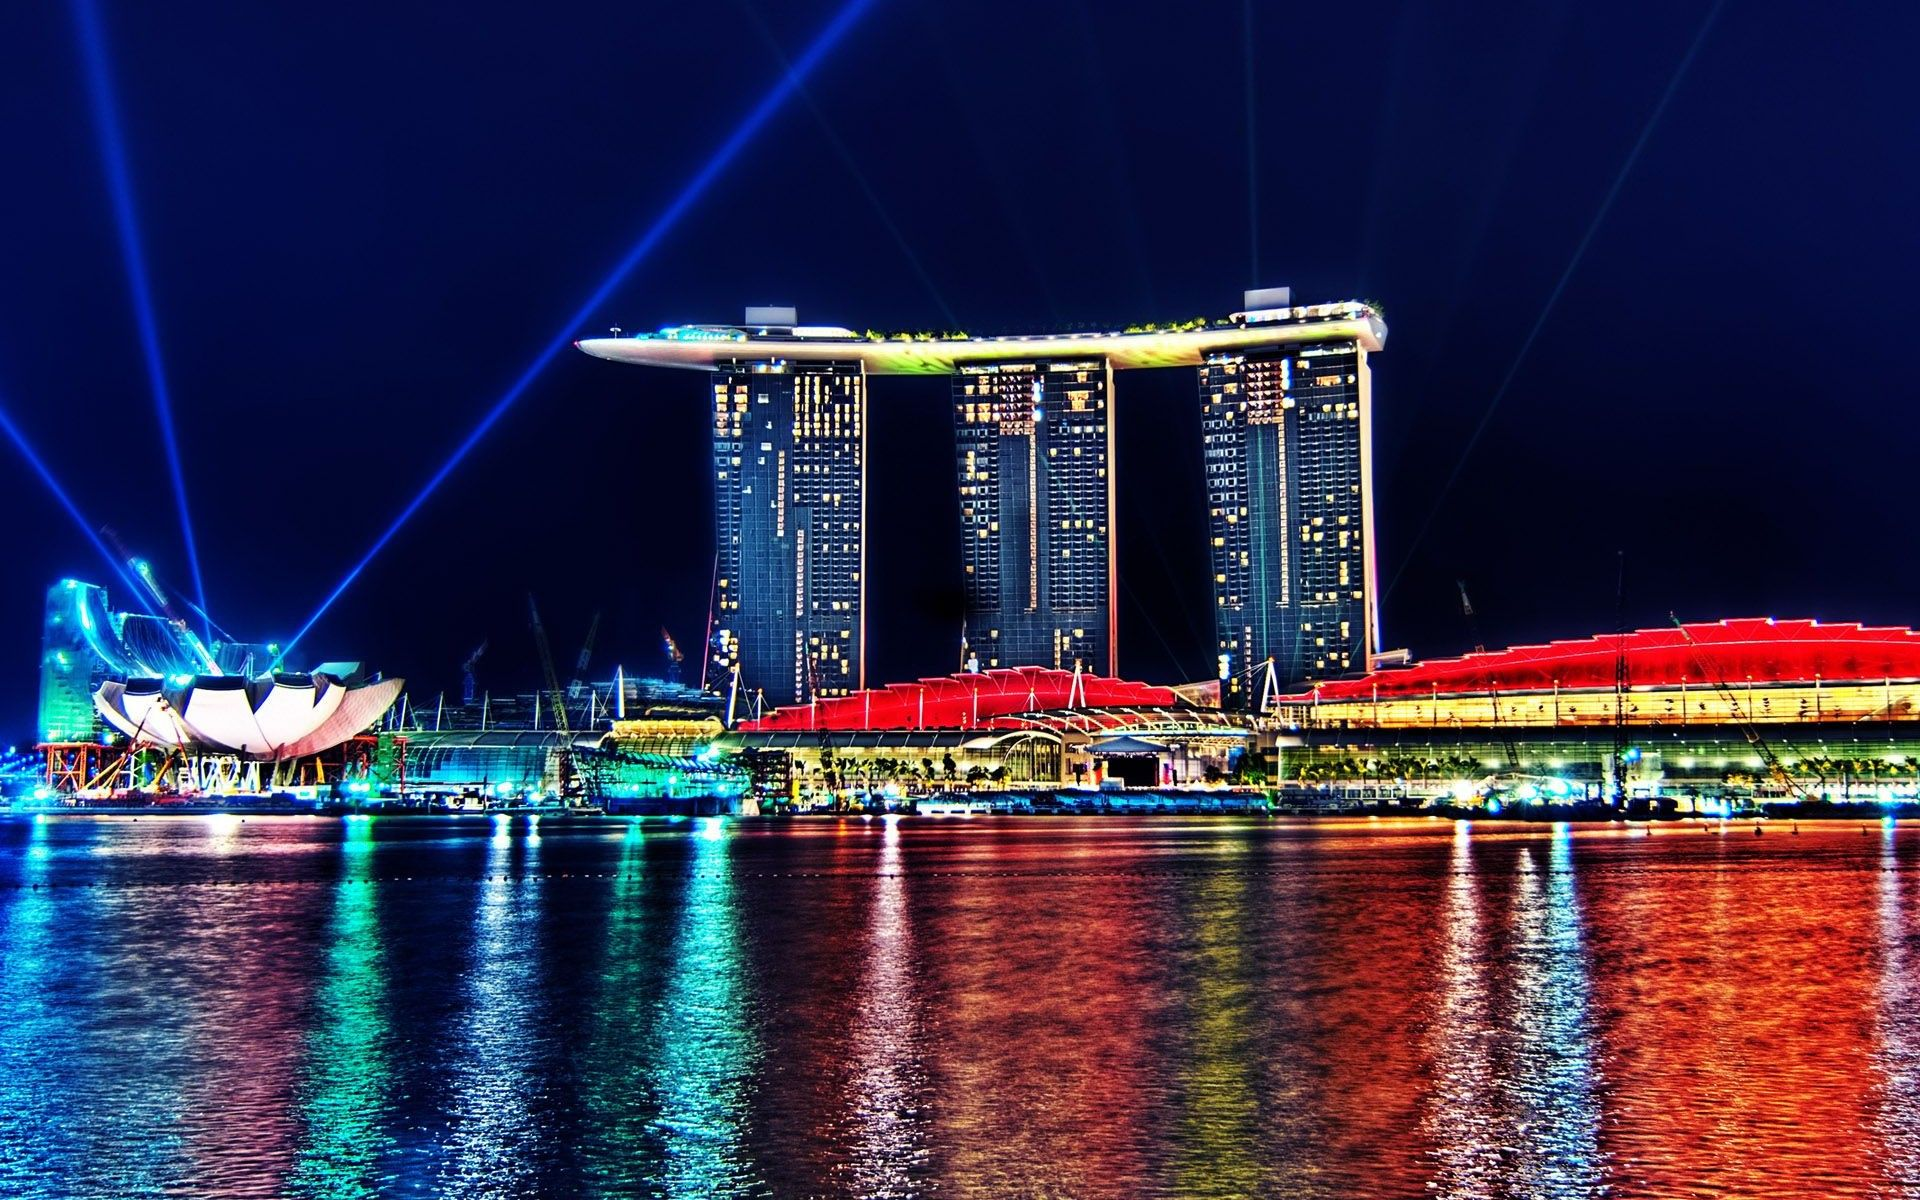 Marina-Bay-Sands